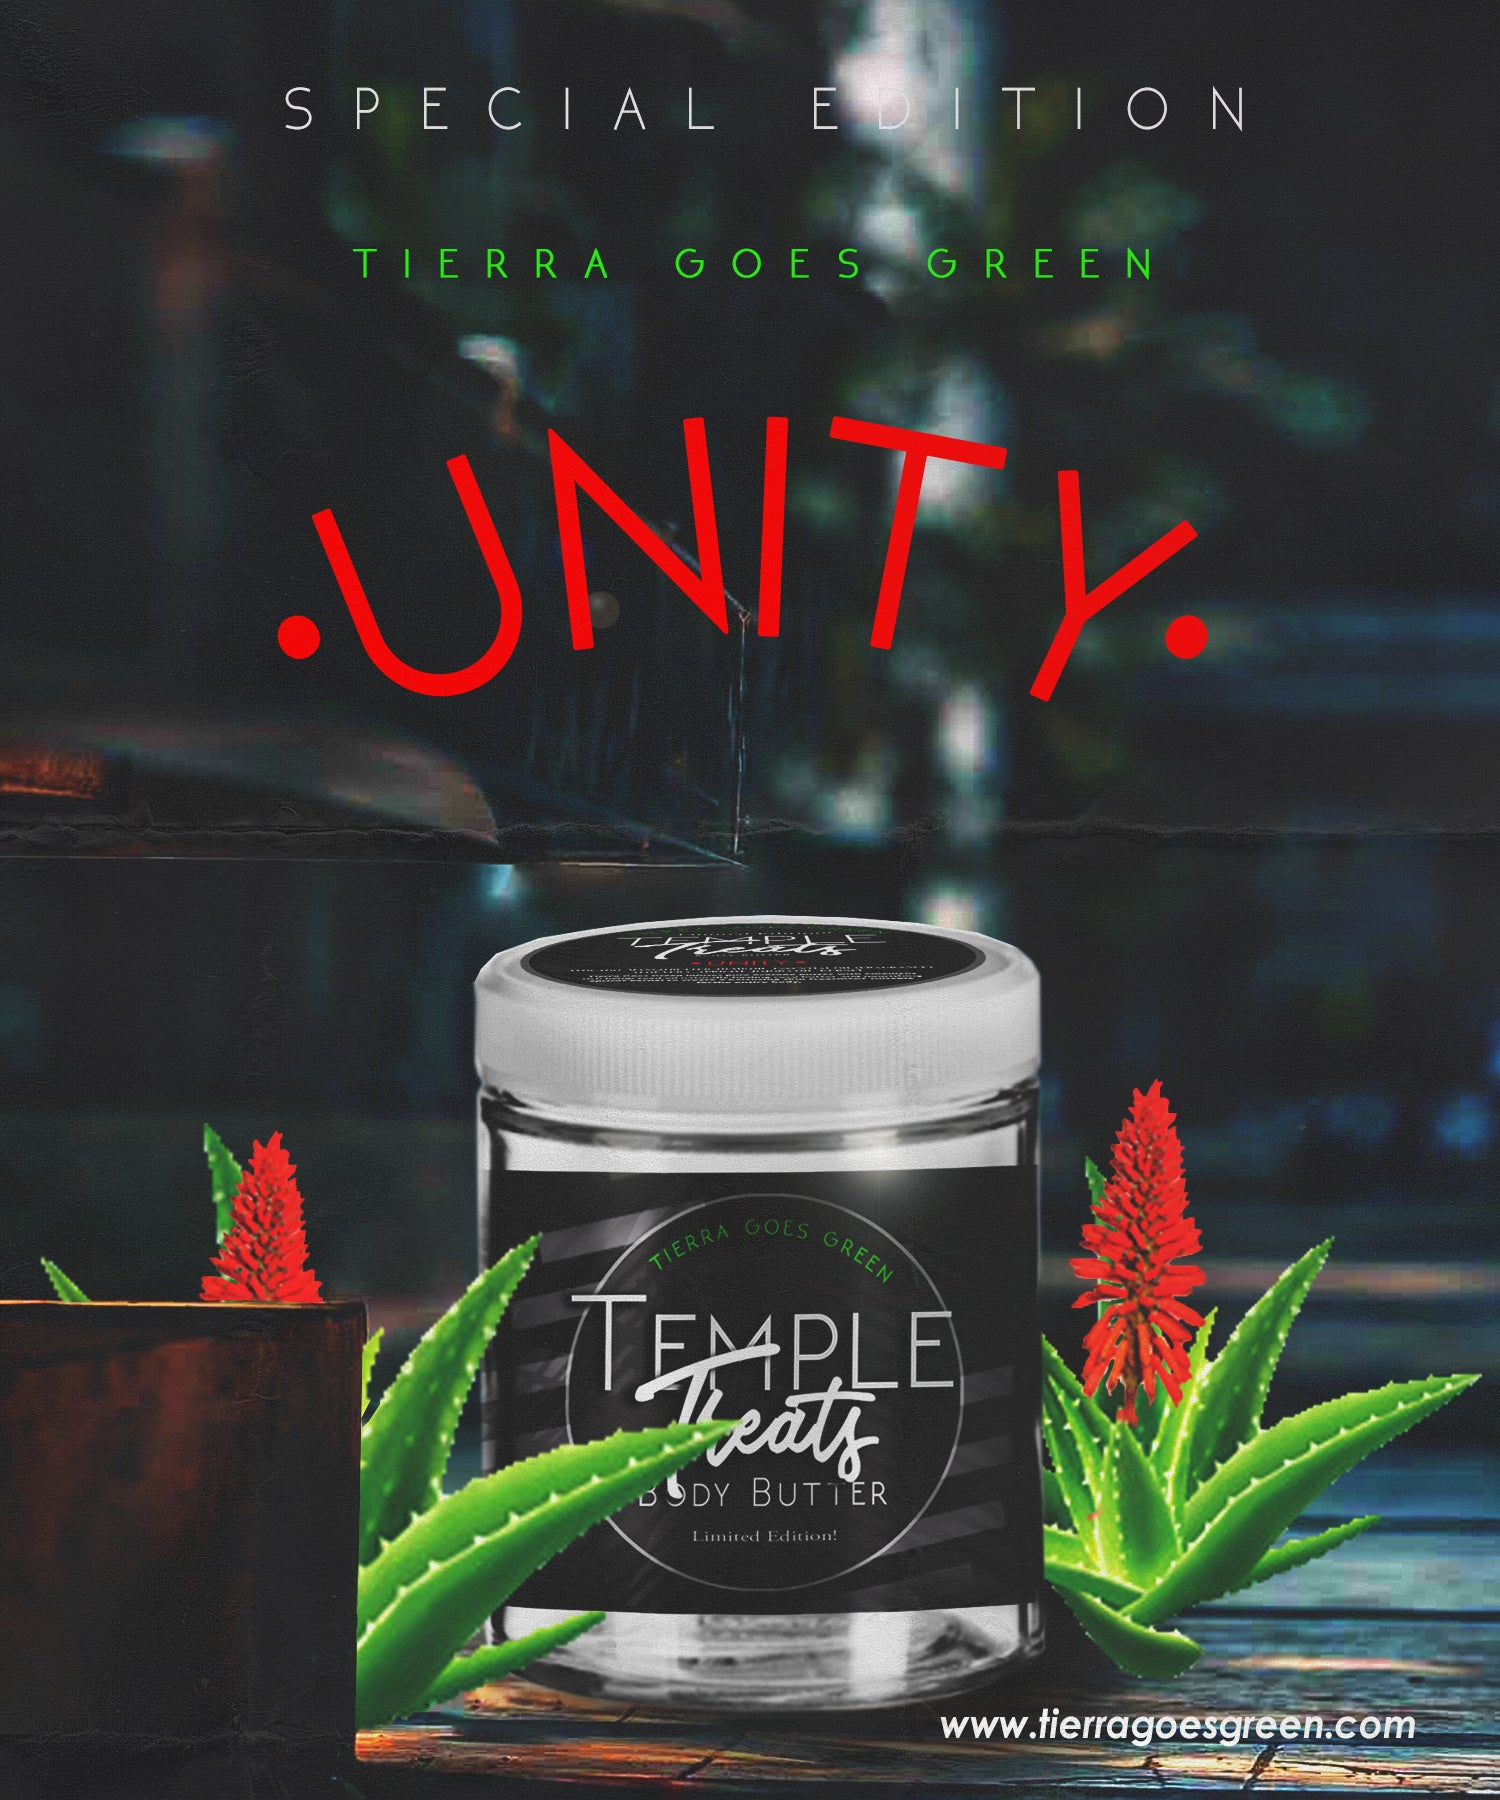 Temple Treats: UNITY (SPECIAL Edition)